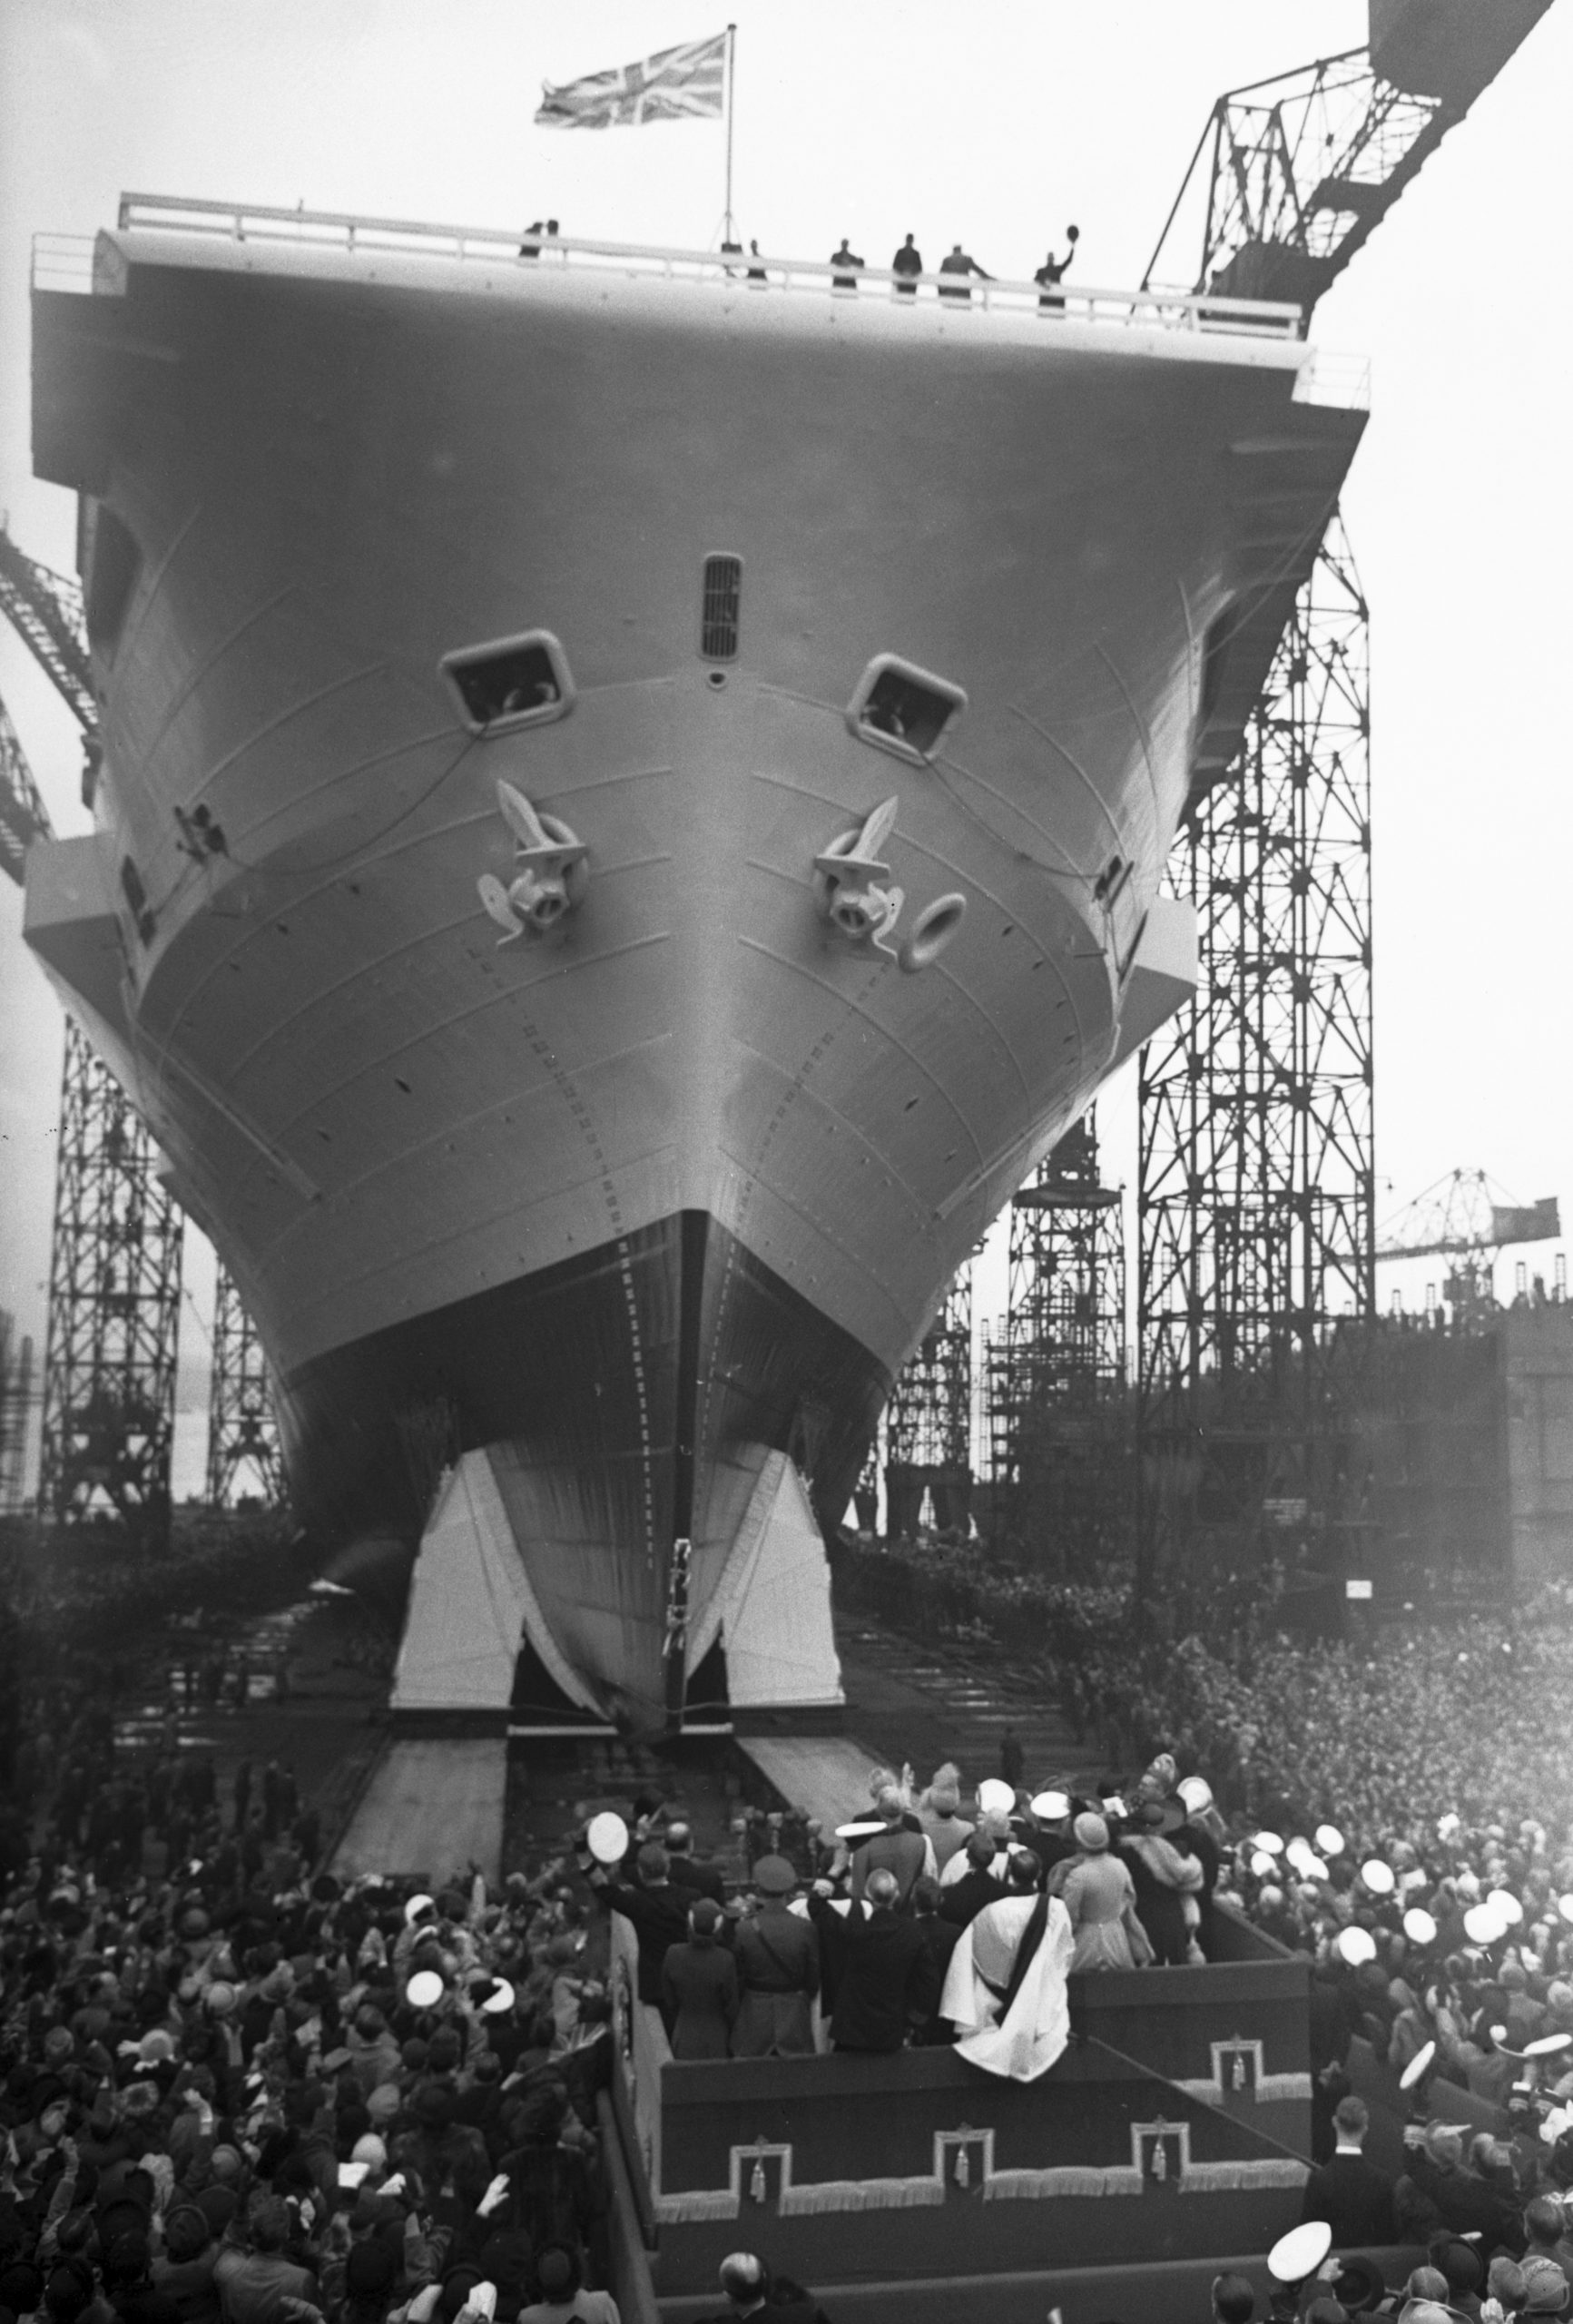 1950: The aircraft carrier HMS Ark Royal is launched at the Cammell Laird shipyard in Birkenhead, Merseyside. (pictured)